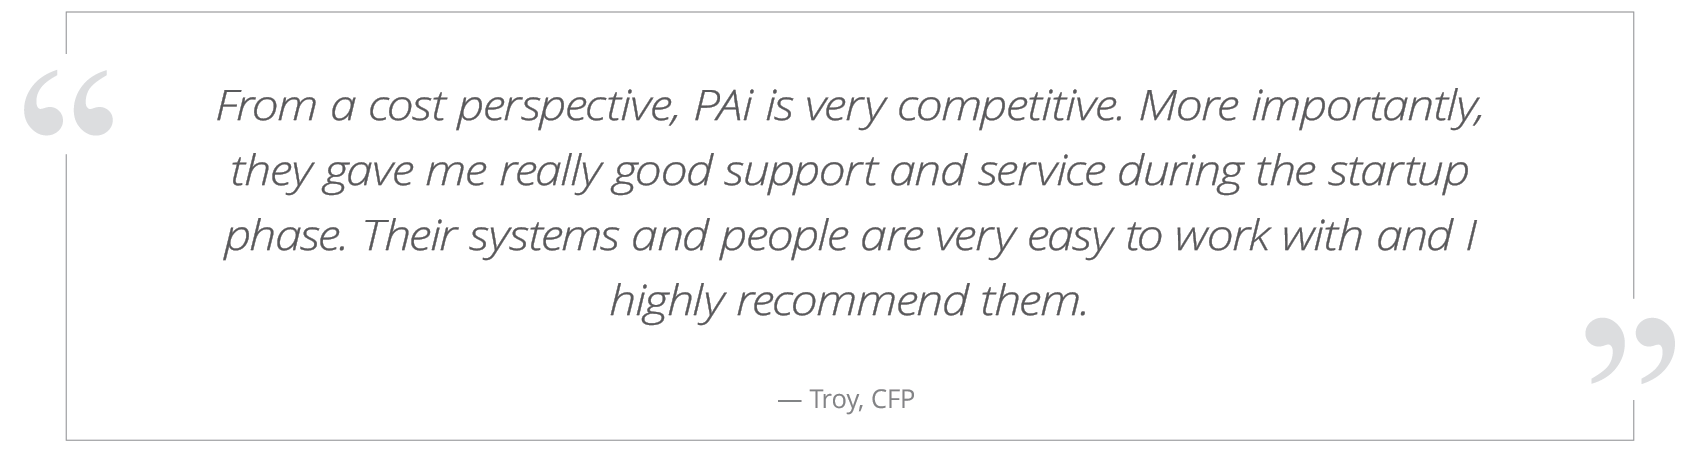 pai-website-testimonial-Troy-Advisor.png